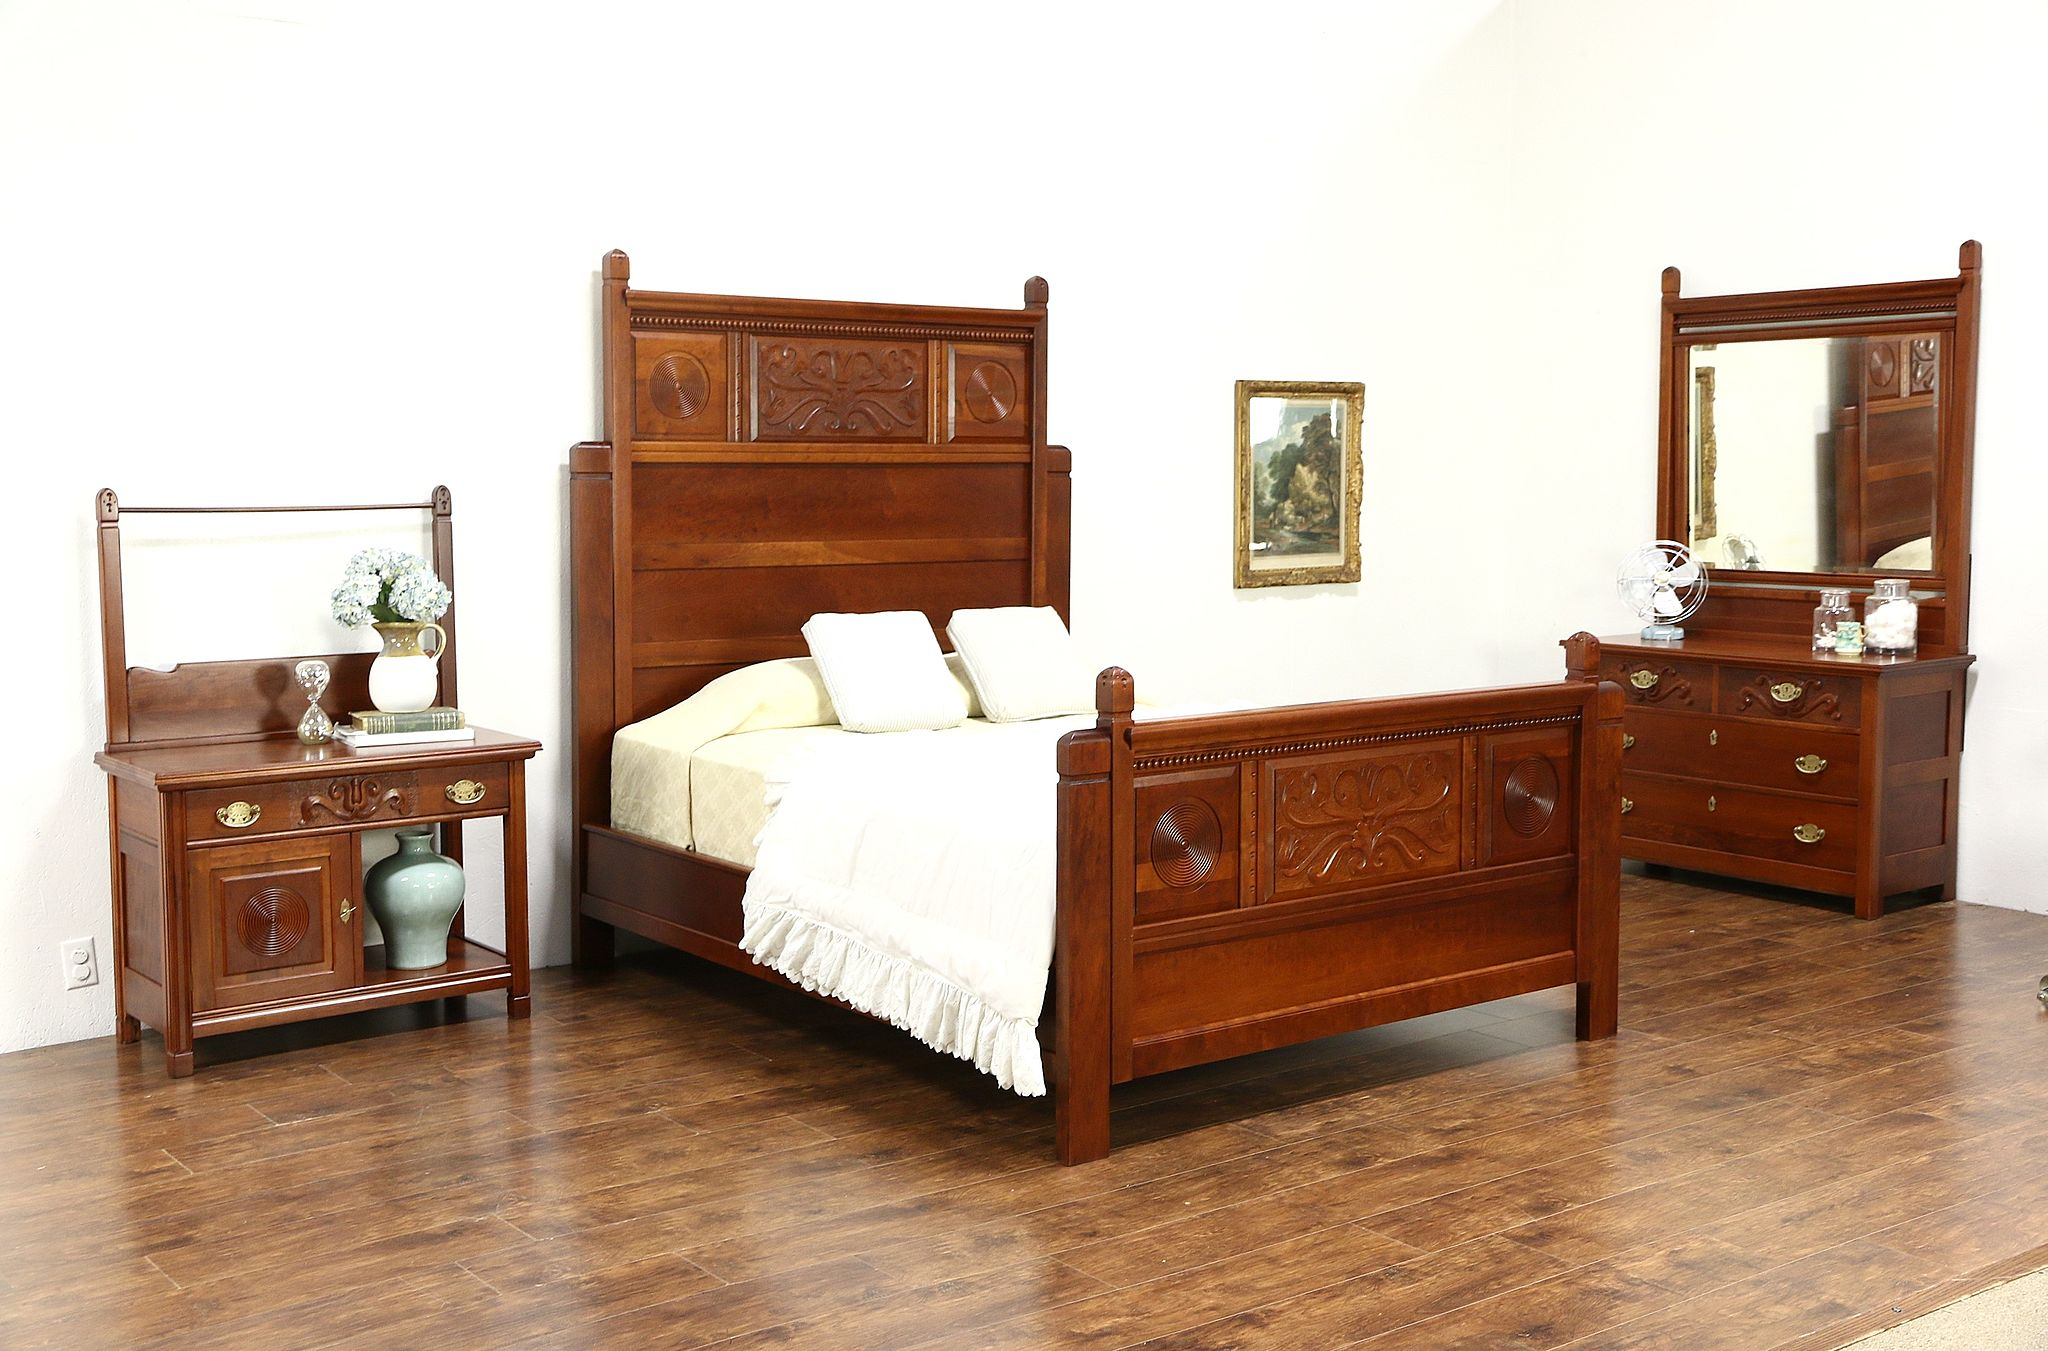 bedroom how to add value on antique bedroom sold 1890 antique carved cherry 3 pc bedroom 93849